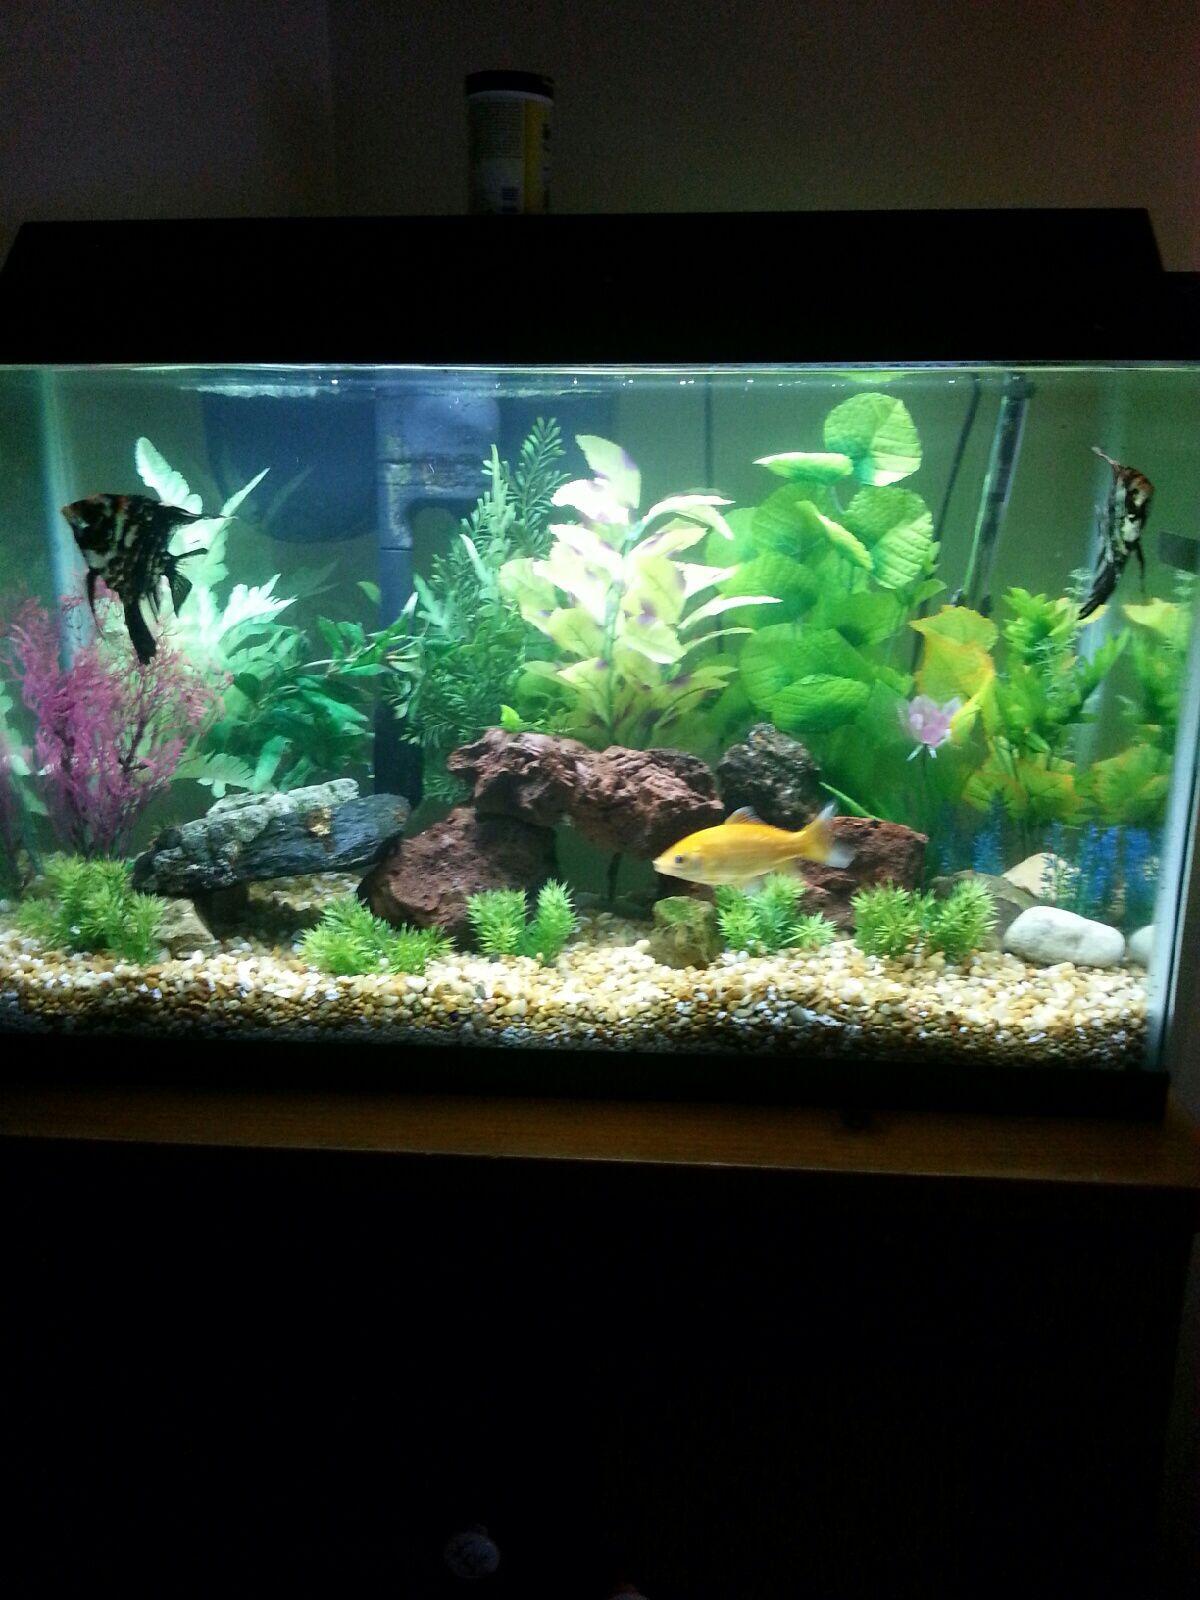 Goldfish pond species decor references - Freshwater Aquarium 30gal With False Plants And Red Lava Rock 2 Angels 25cent Goldfish